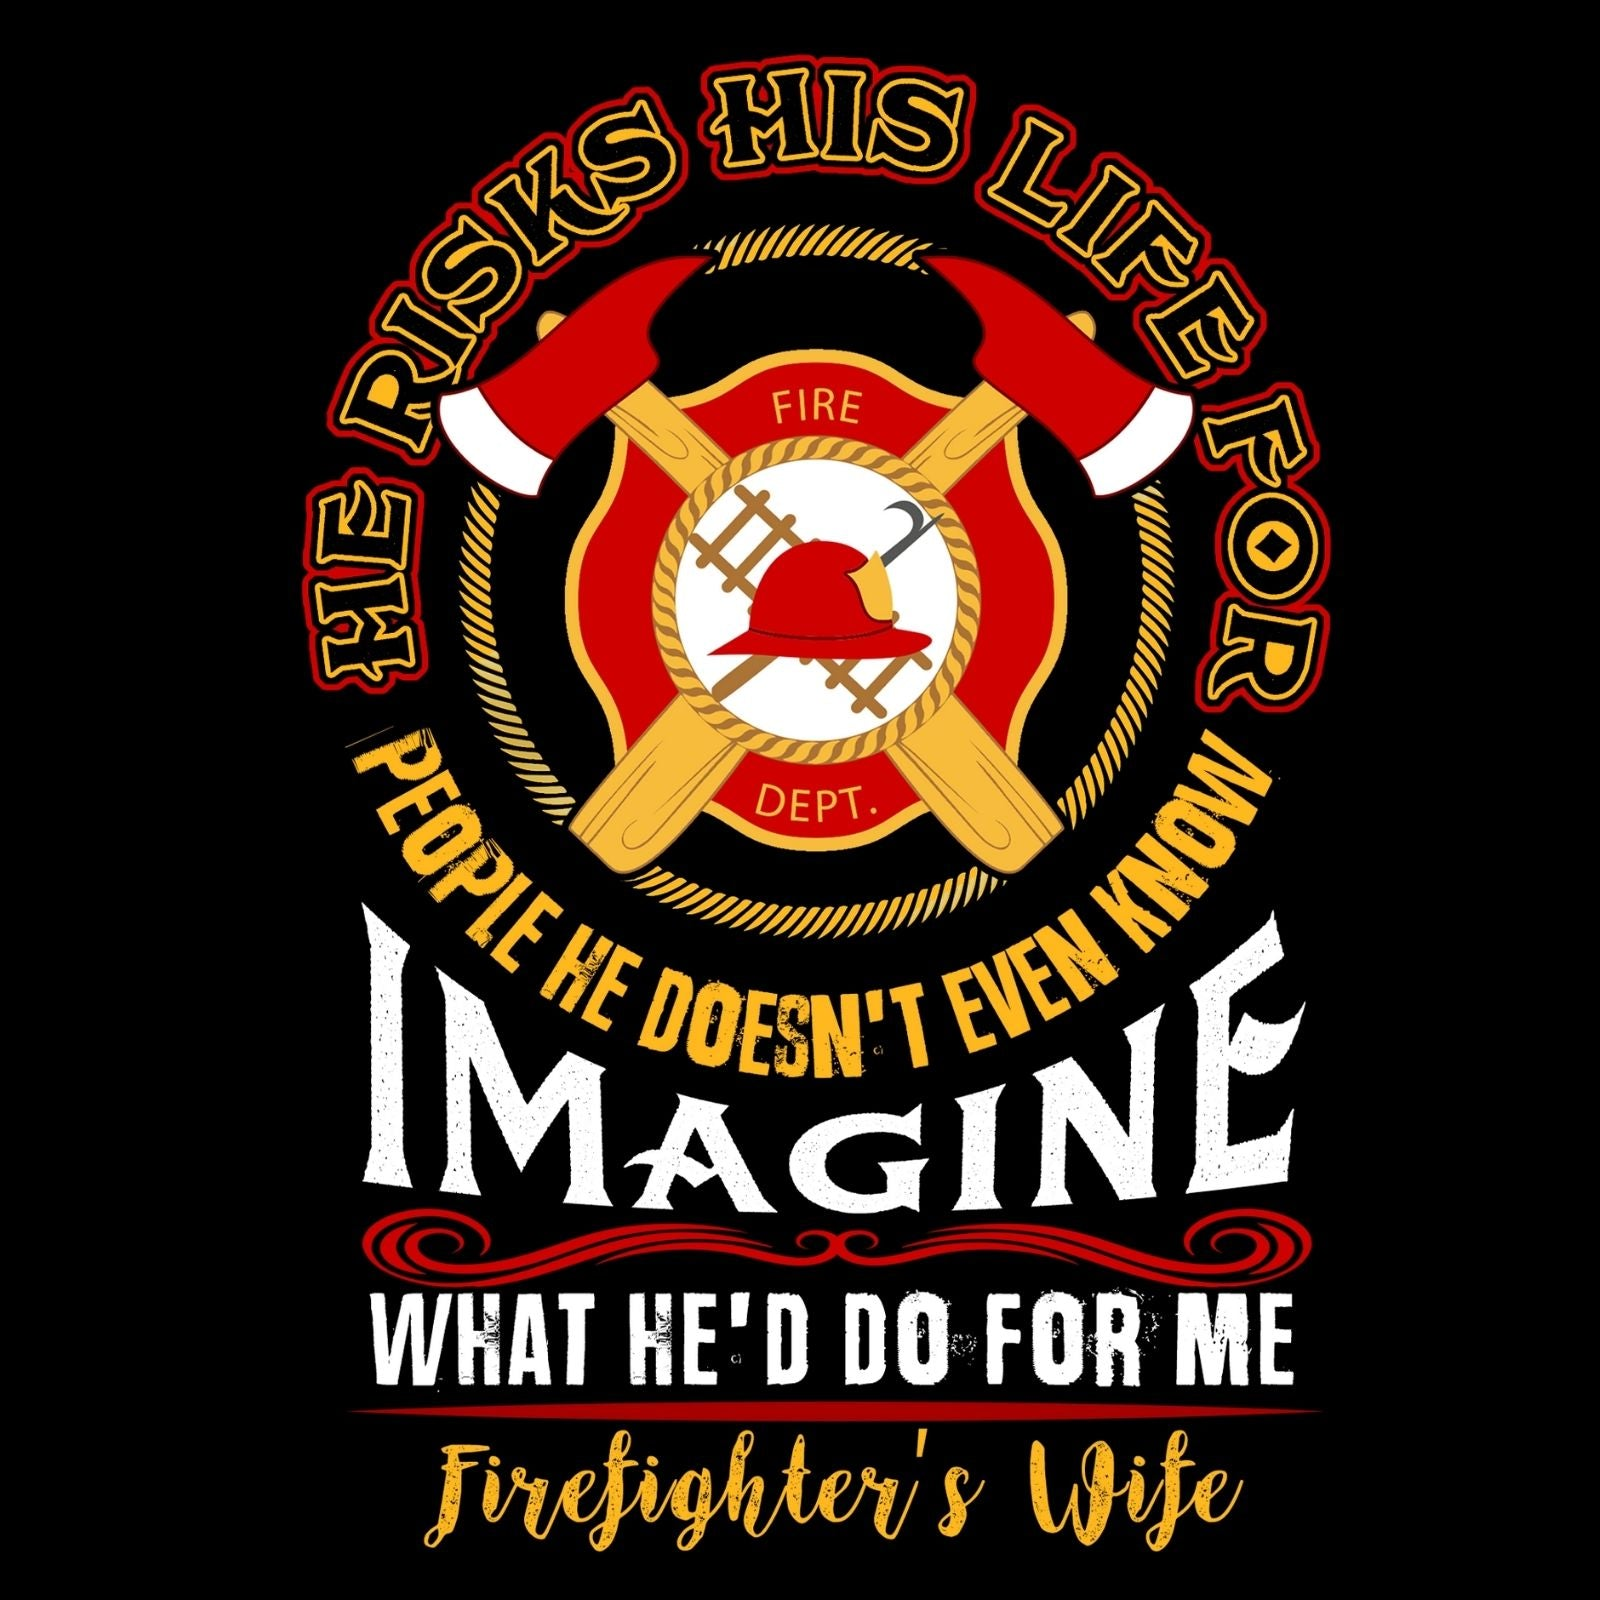 He Risk His Life For People he Doesn't Even Know, Imagine What He'd Do For Me Firefighter's Wife - Bastard Graphics